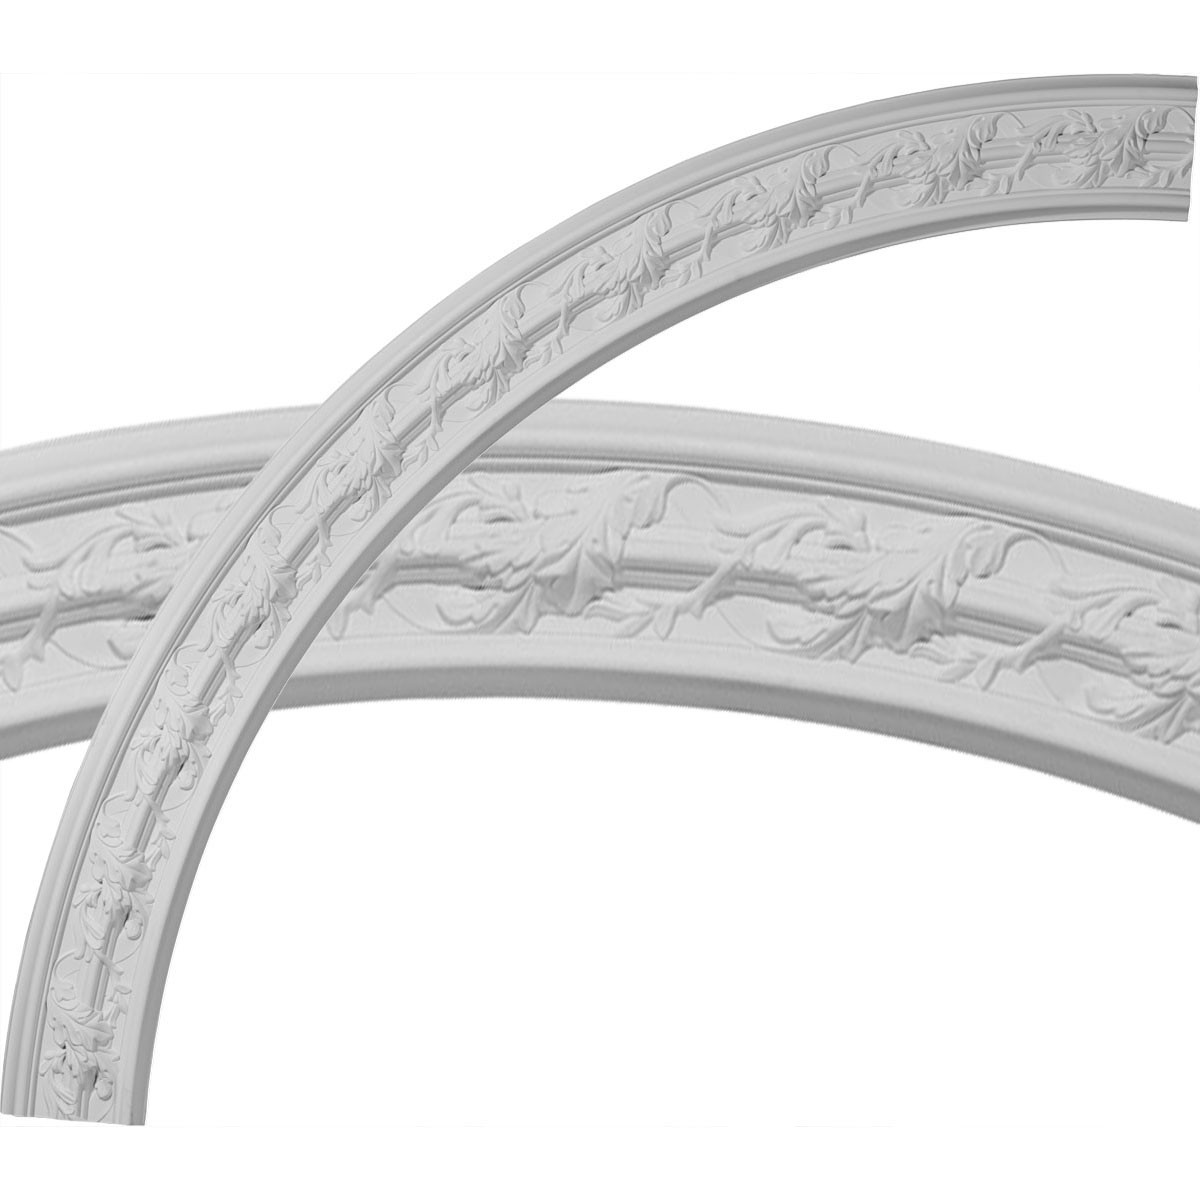 """EM-CR67SO - 66 3/4""""OD x 58""""ID x 4 3/8""""W x 1""""P Southampton Acanthus Leaf Ceiling Ring (1/4 of complete circle)"""